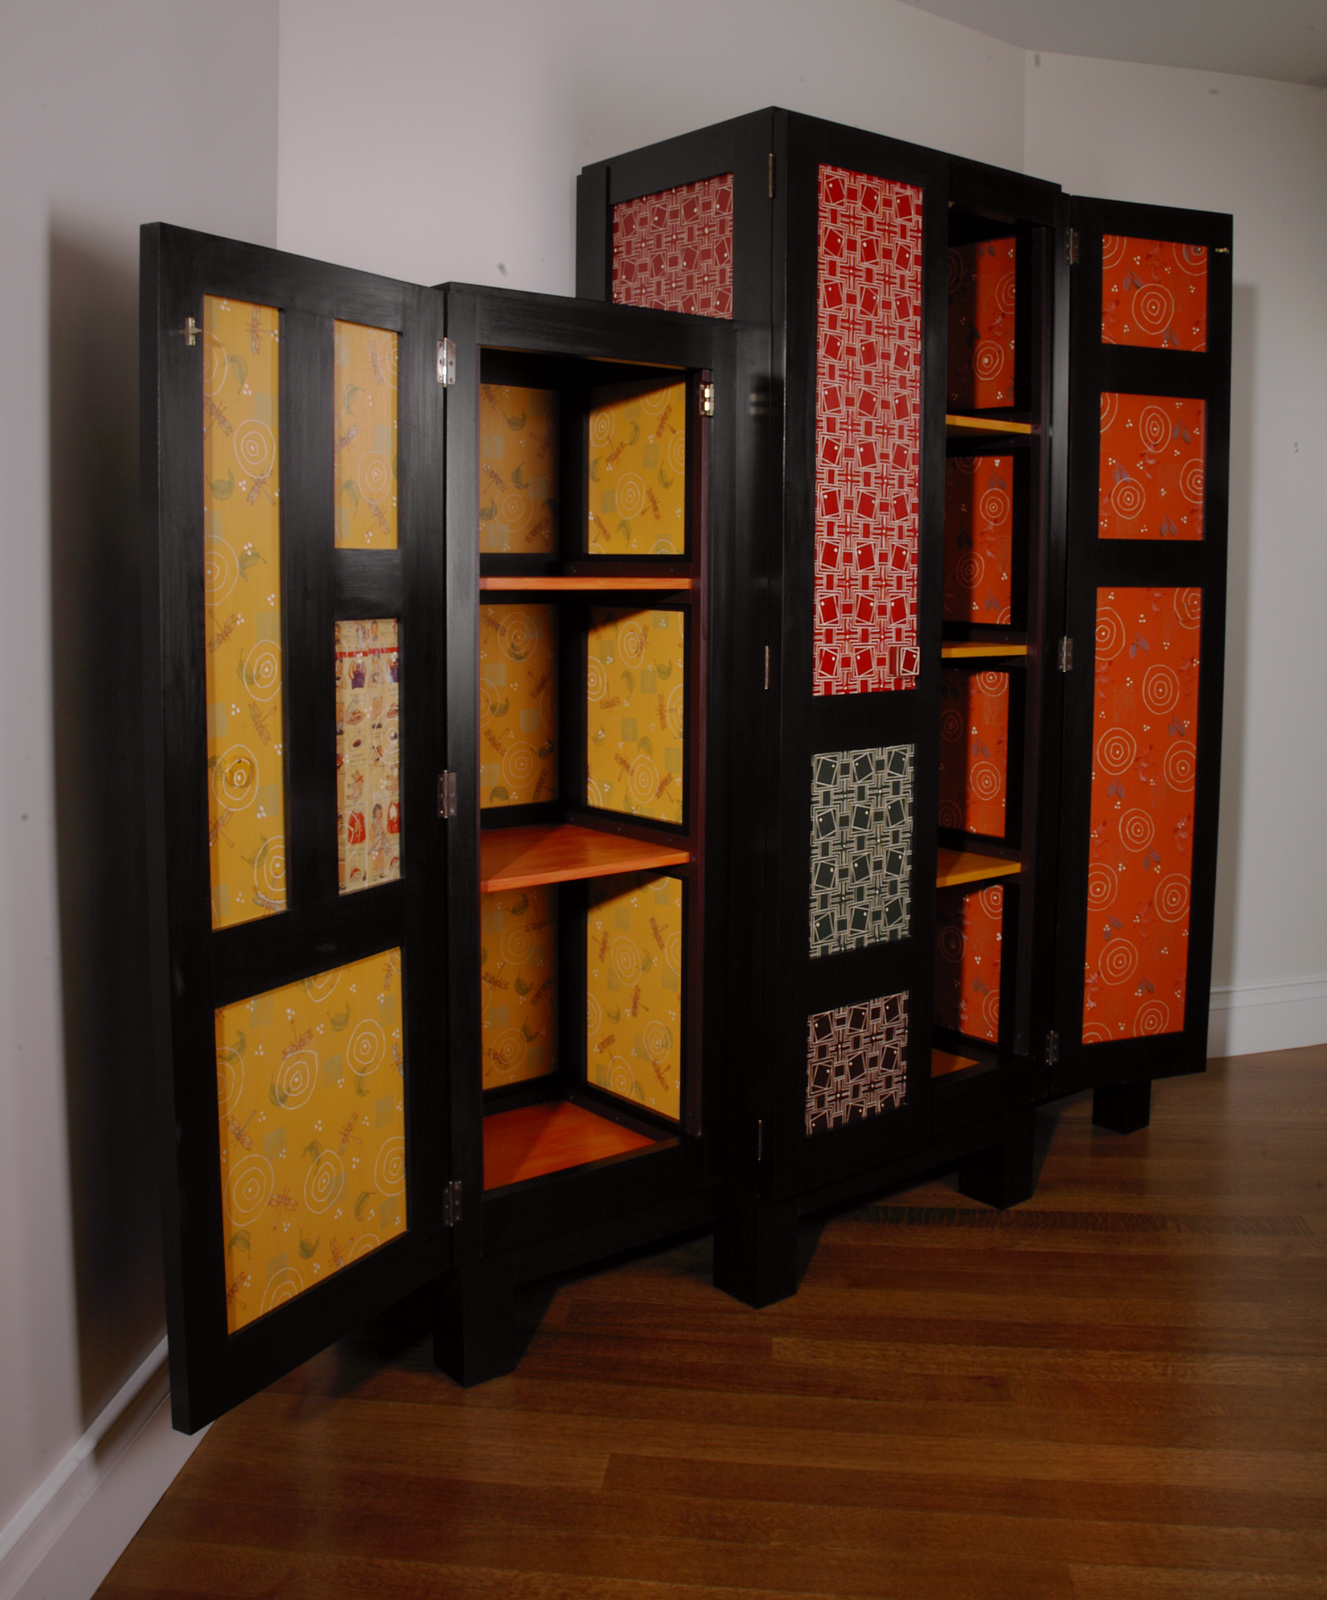 B and B Cabinet (inside view)